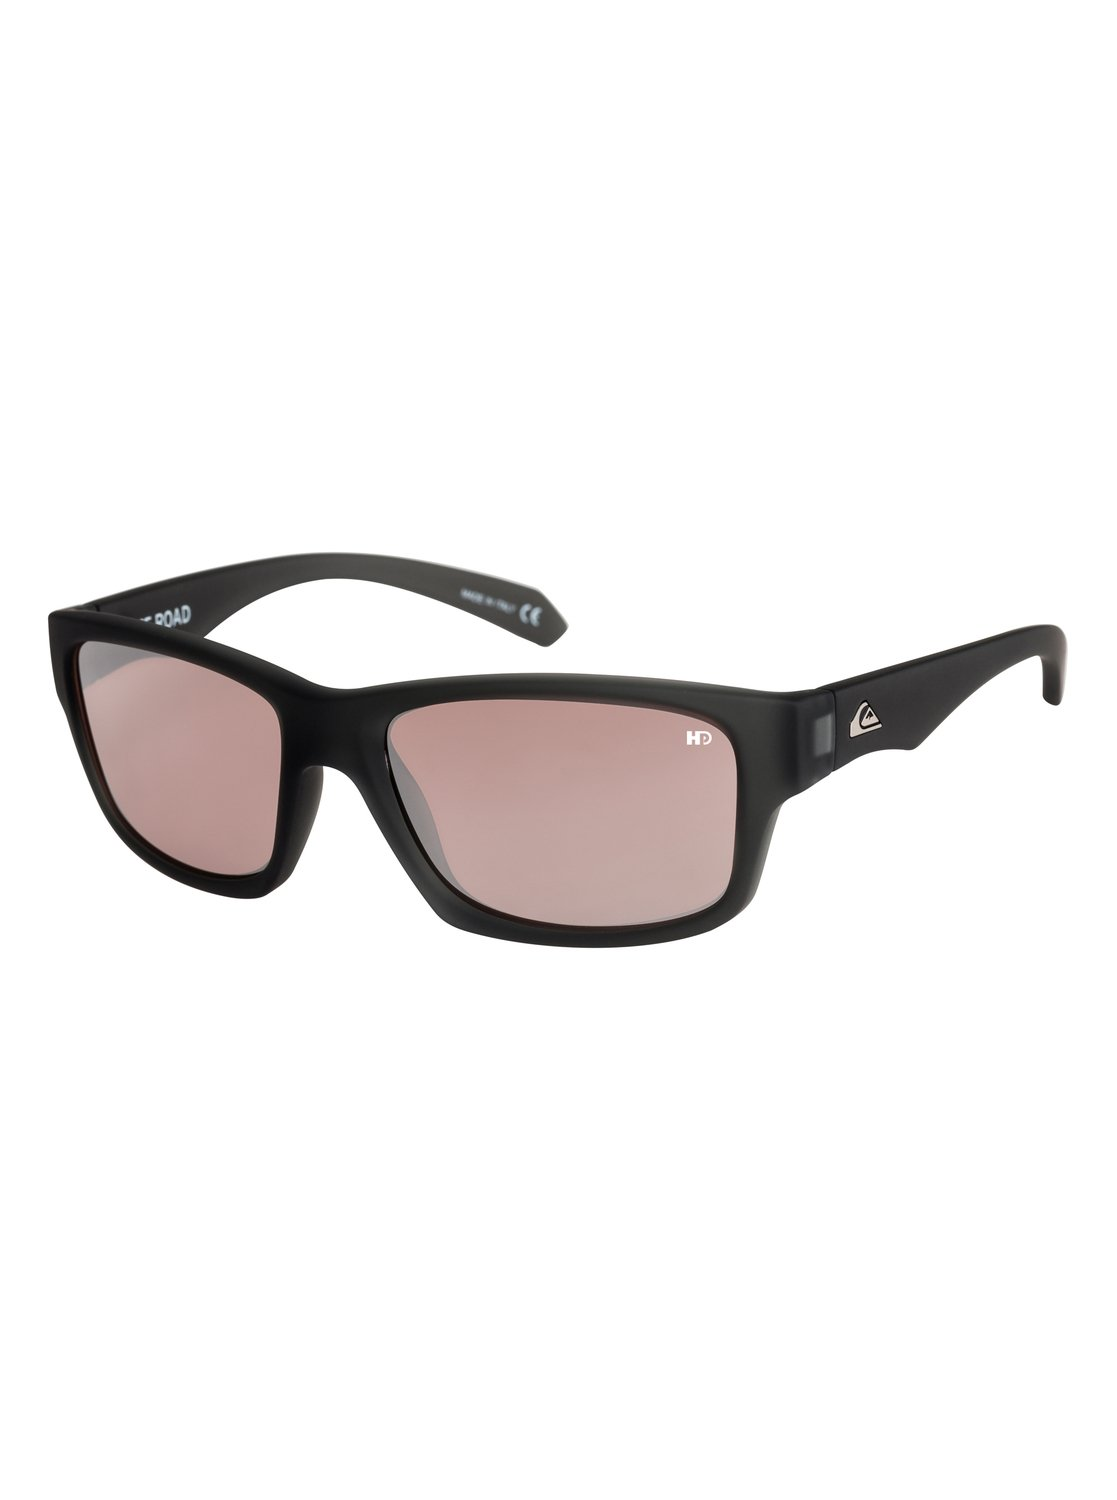 Off Road Hd Polarized - Sunglasses